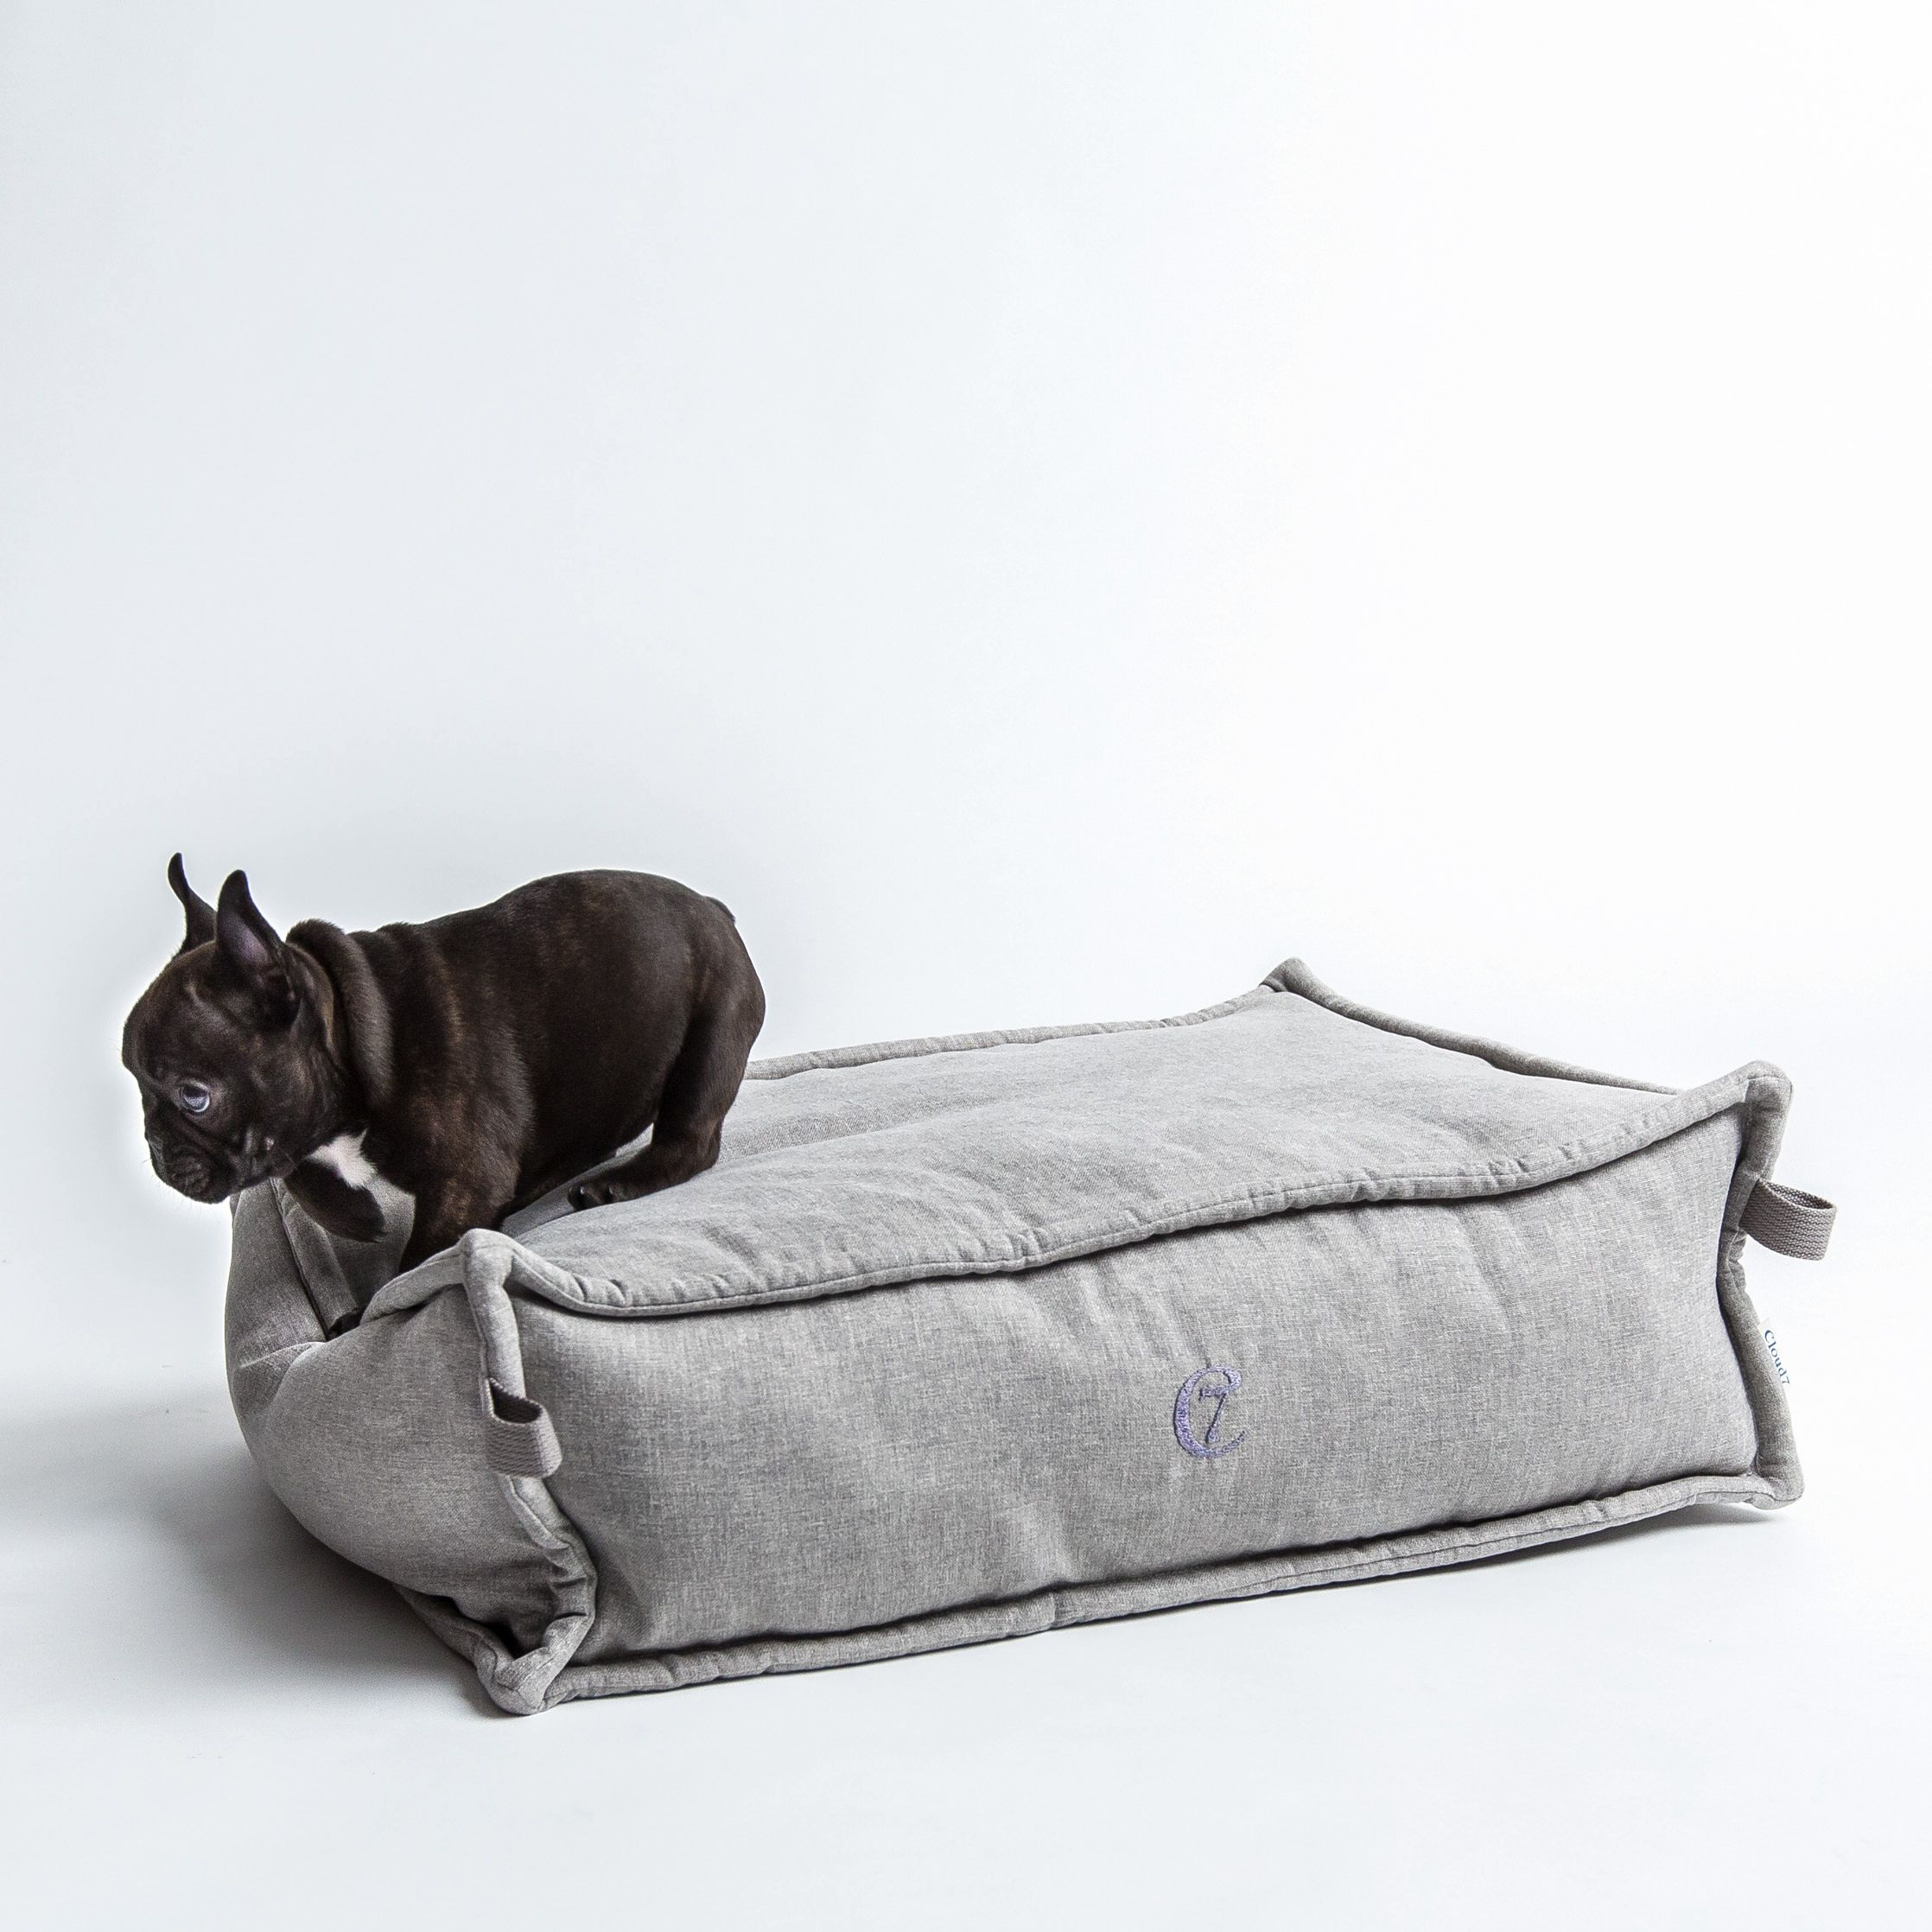 How To Make An Interesting Art Piece Using Tree Branches Ehow In 2021 Cute Dog Beds Stylish Dog Beds Sleeping Dogs